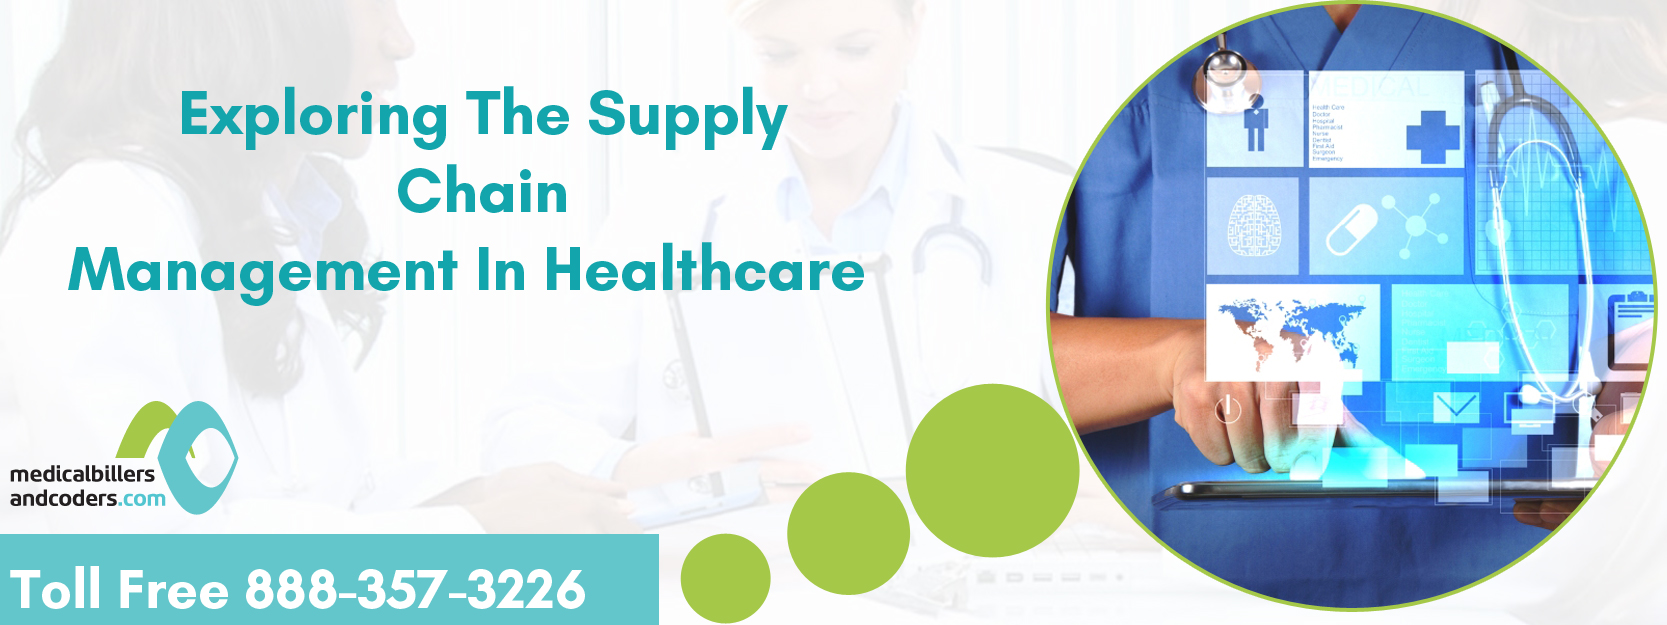 Exploring-The-Supply-Chain-Management-In-Healthcare